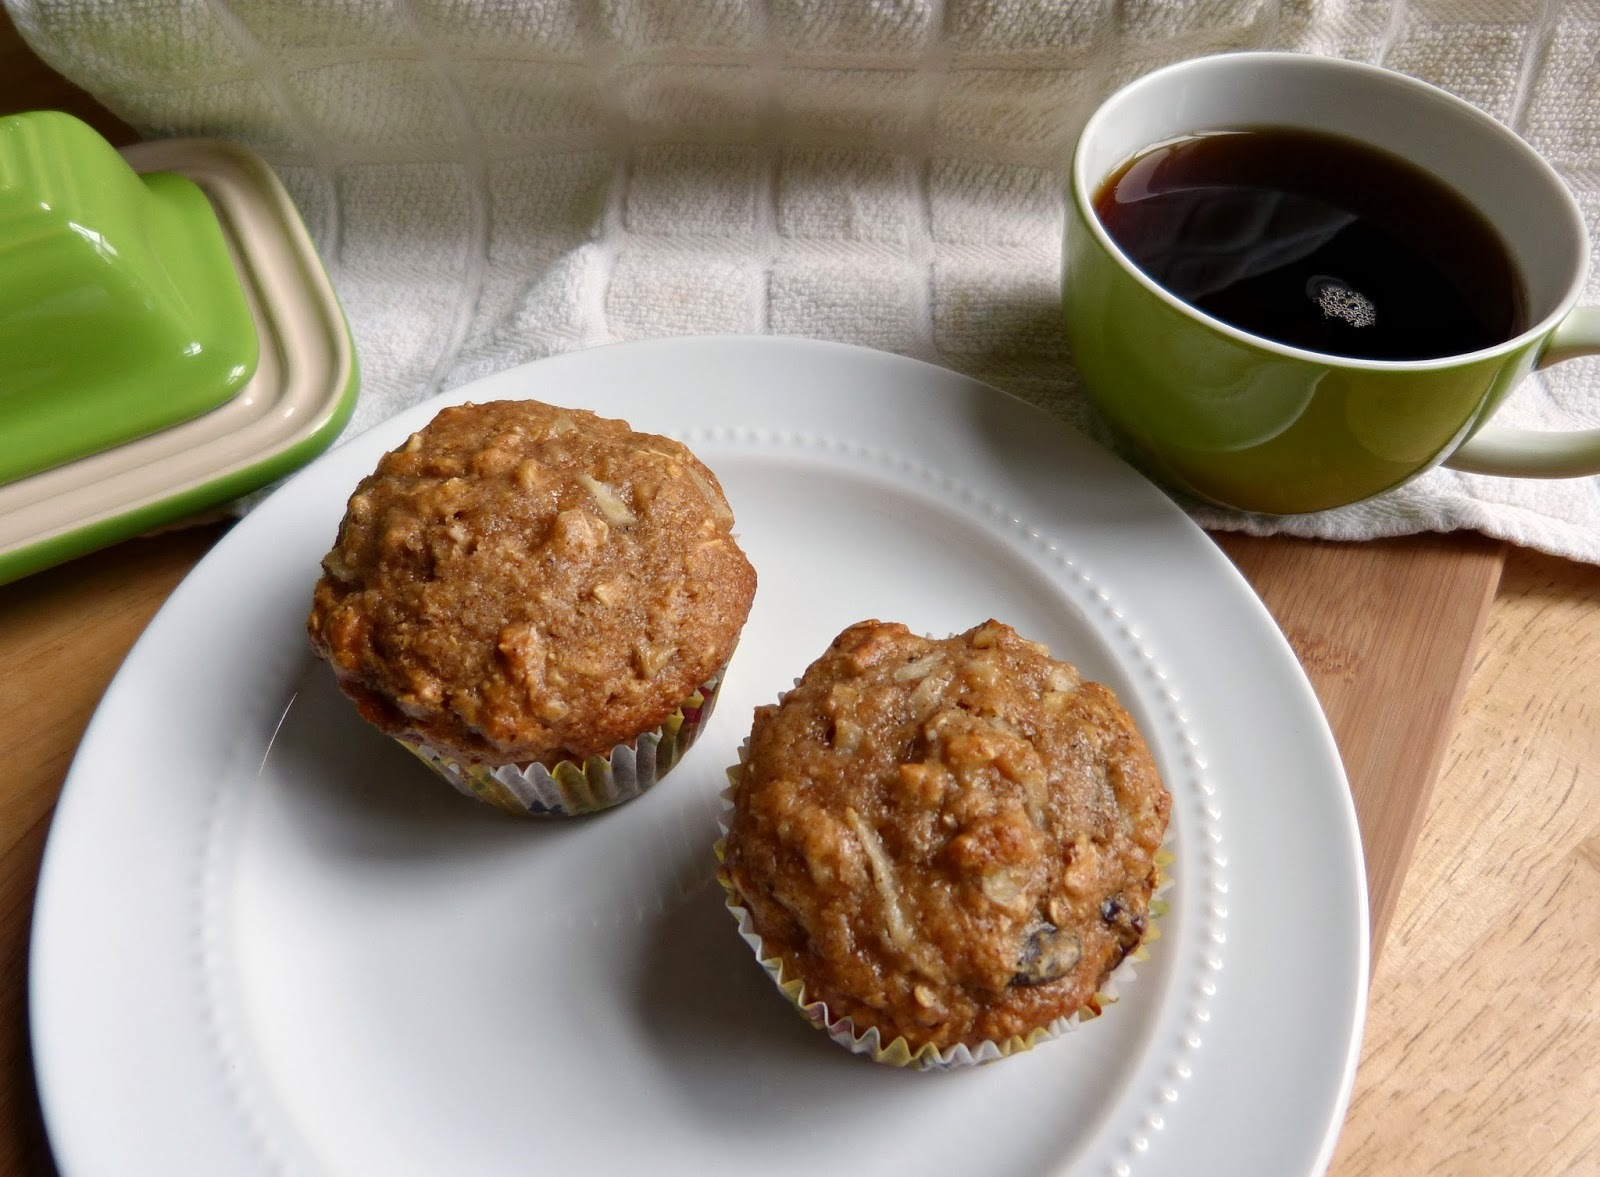 Weekend Baking: Whole Grain Pear Pecan Breakfast Muffins